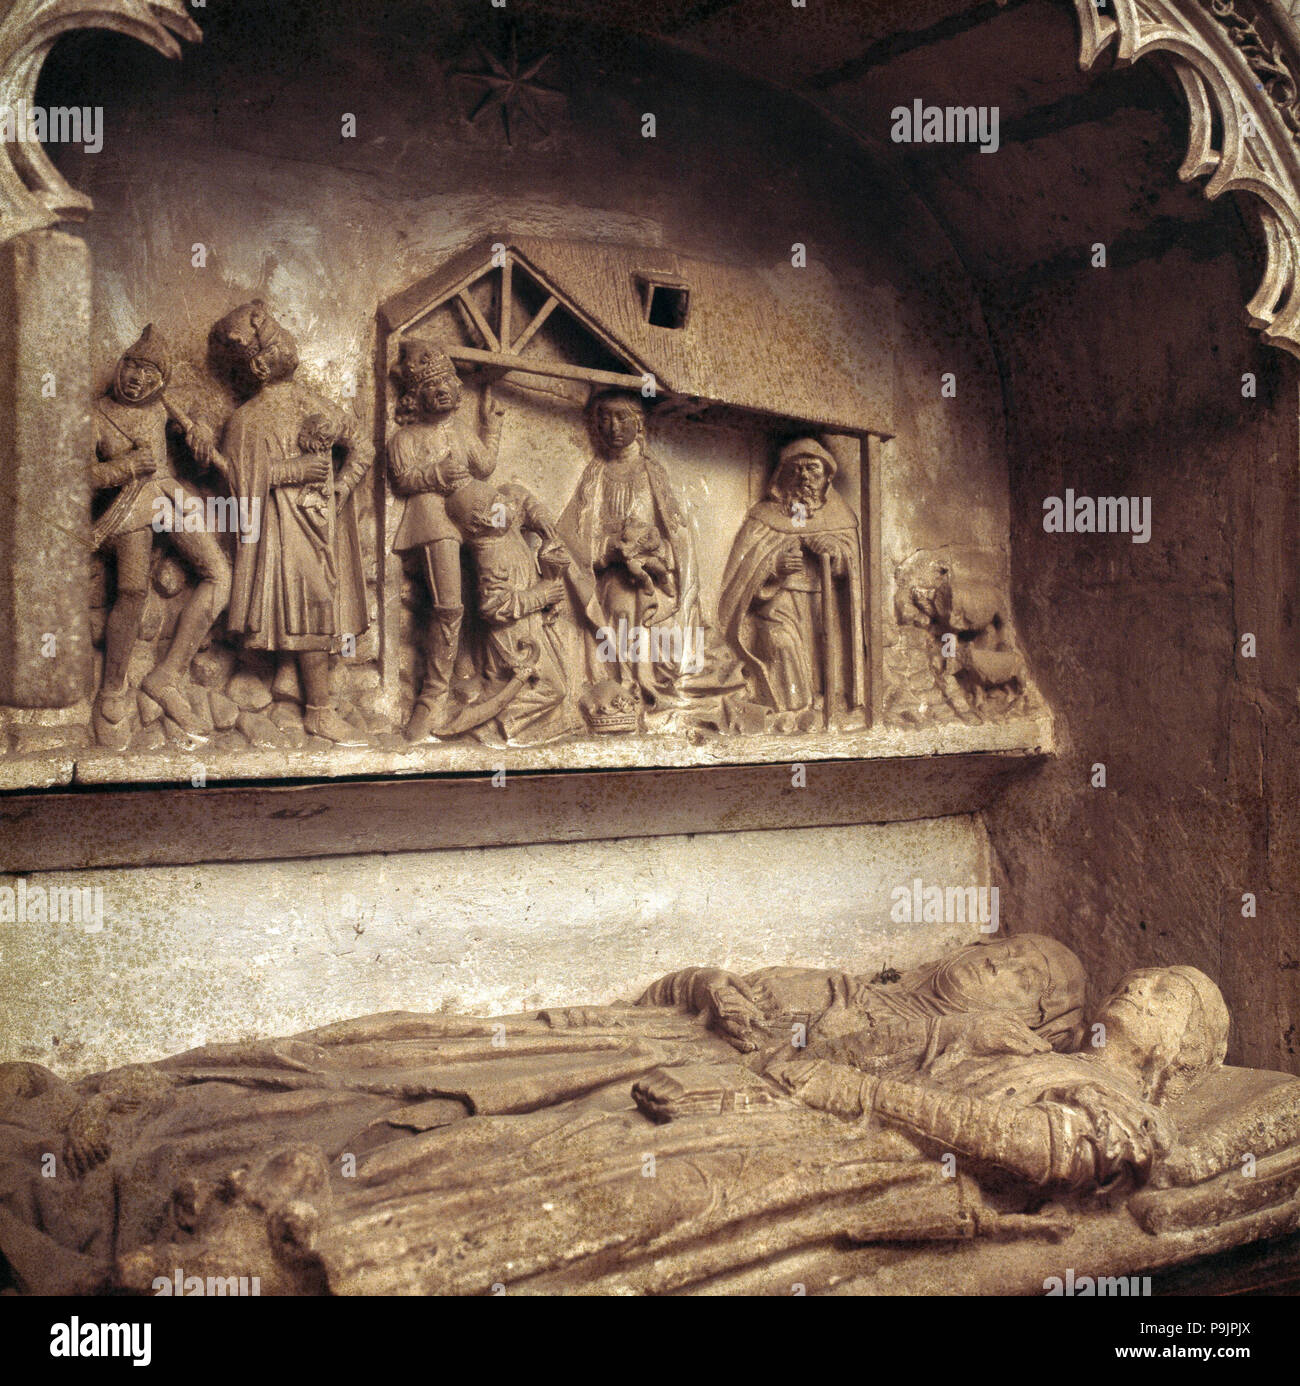 Detail of one of the tombs located in the collegiate church of Covarrubias. - Stock Image